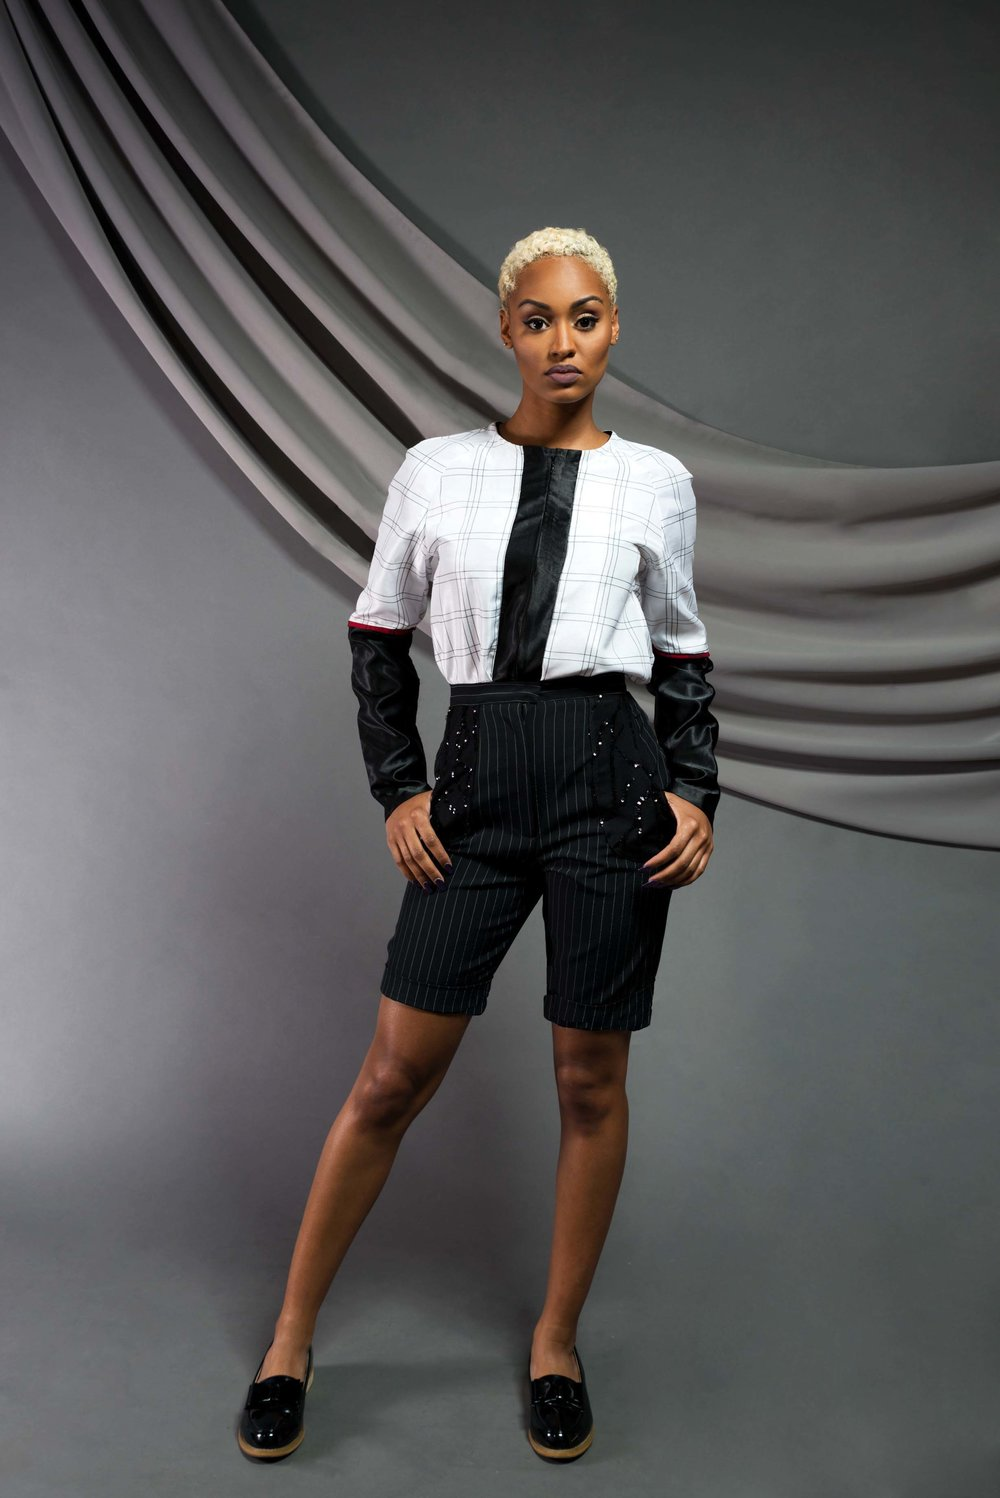 Long-sleeve Poker blouse:  Satin shantung, dupioni silk, viscose   Sequin Bermuda Shorts:  Wool suits, sequin mesh